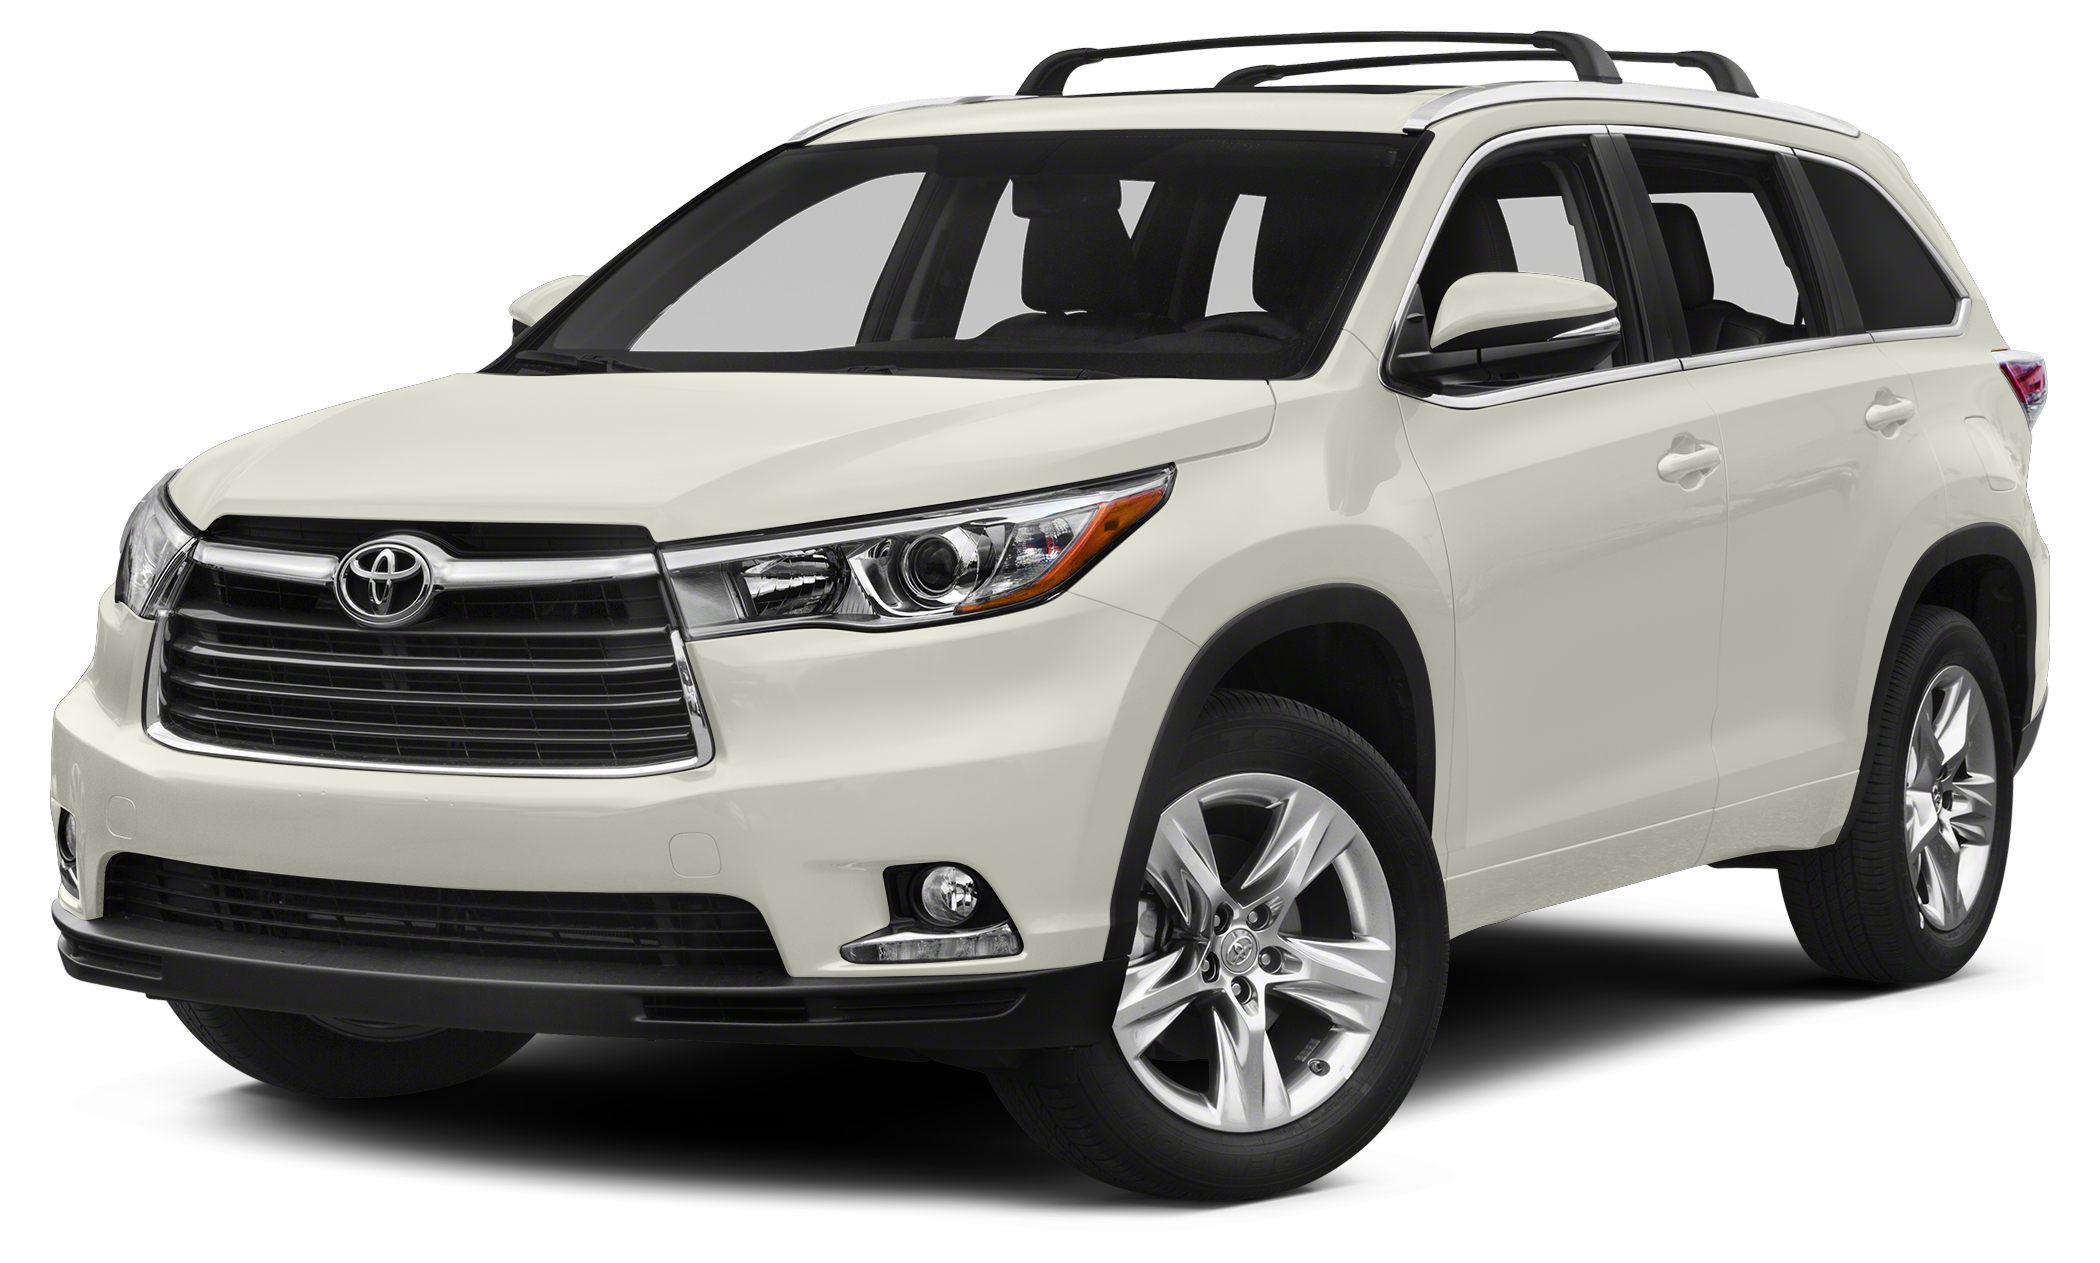 2014 Toyota Highlander XLE CARFAX 1-Owner GREAT MILES 17217 FUEL EFFICIENT 24 MPG Hwy18 MPG Ci